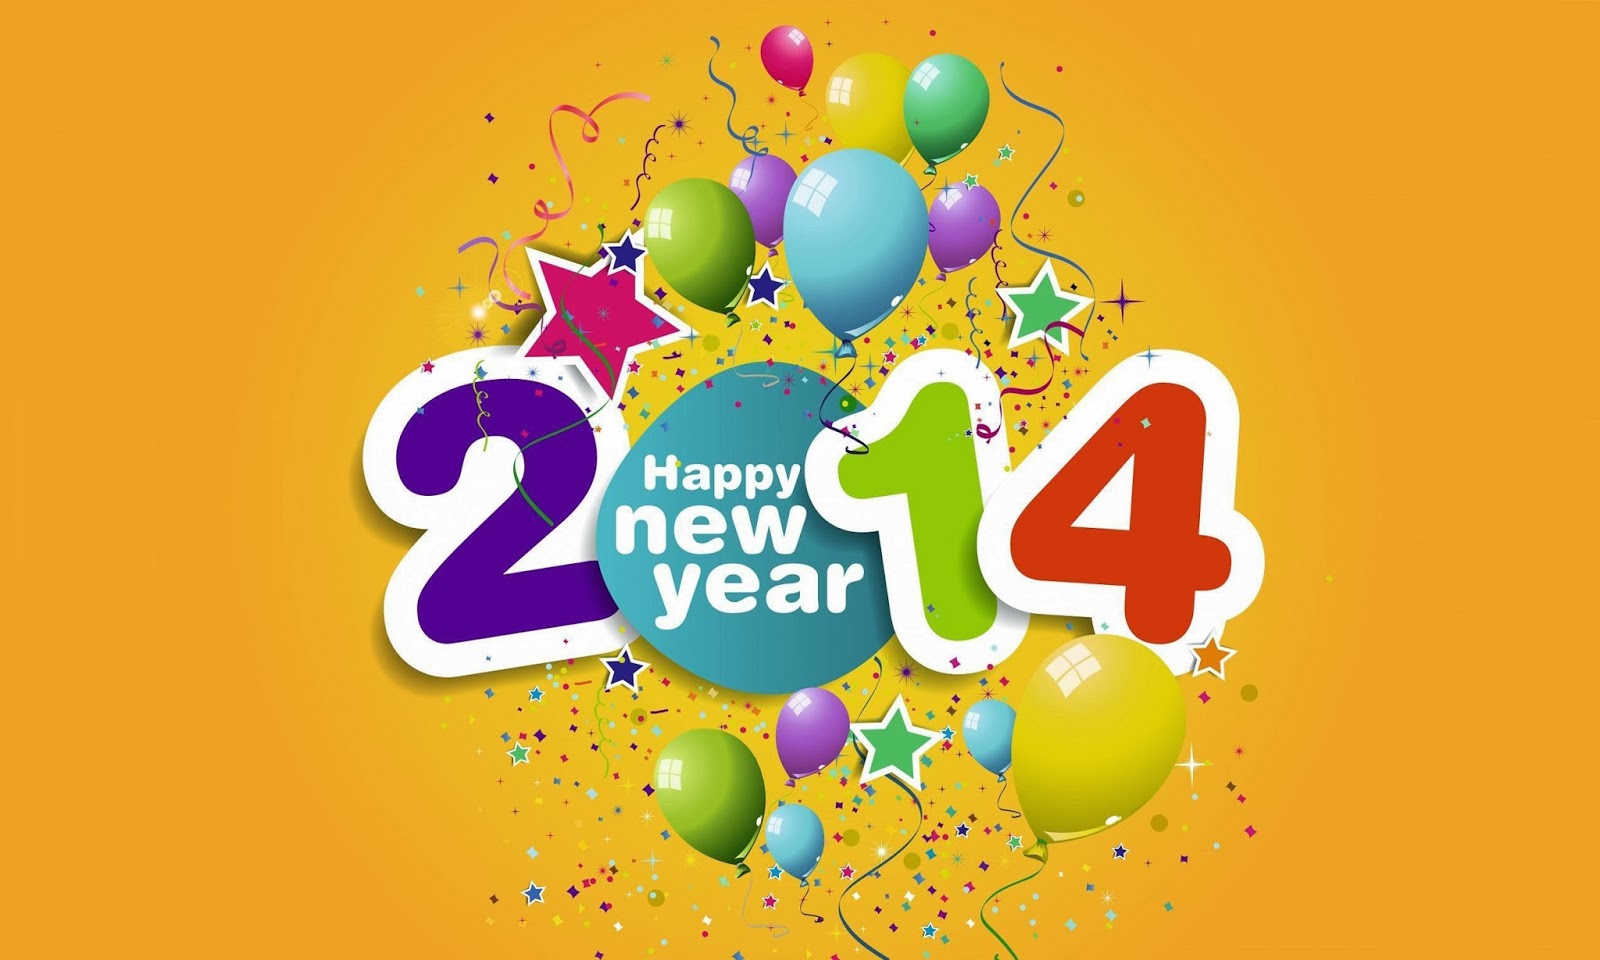 happy new year 2014 full hd wallpapers 1080p 2014 full hd wallpapers new year full hd wallpapers